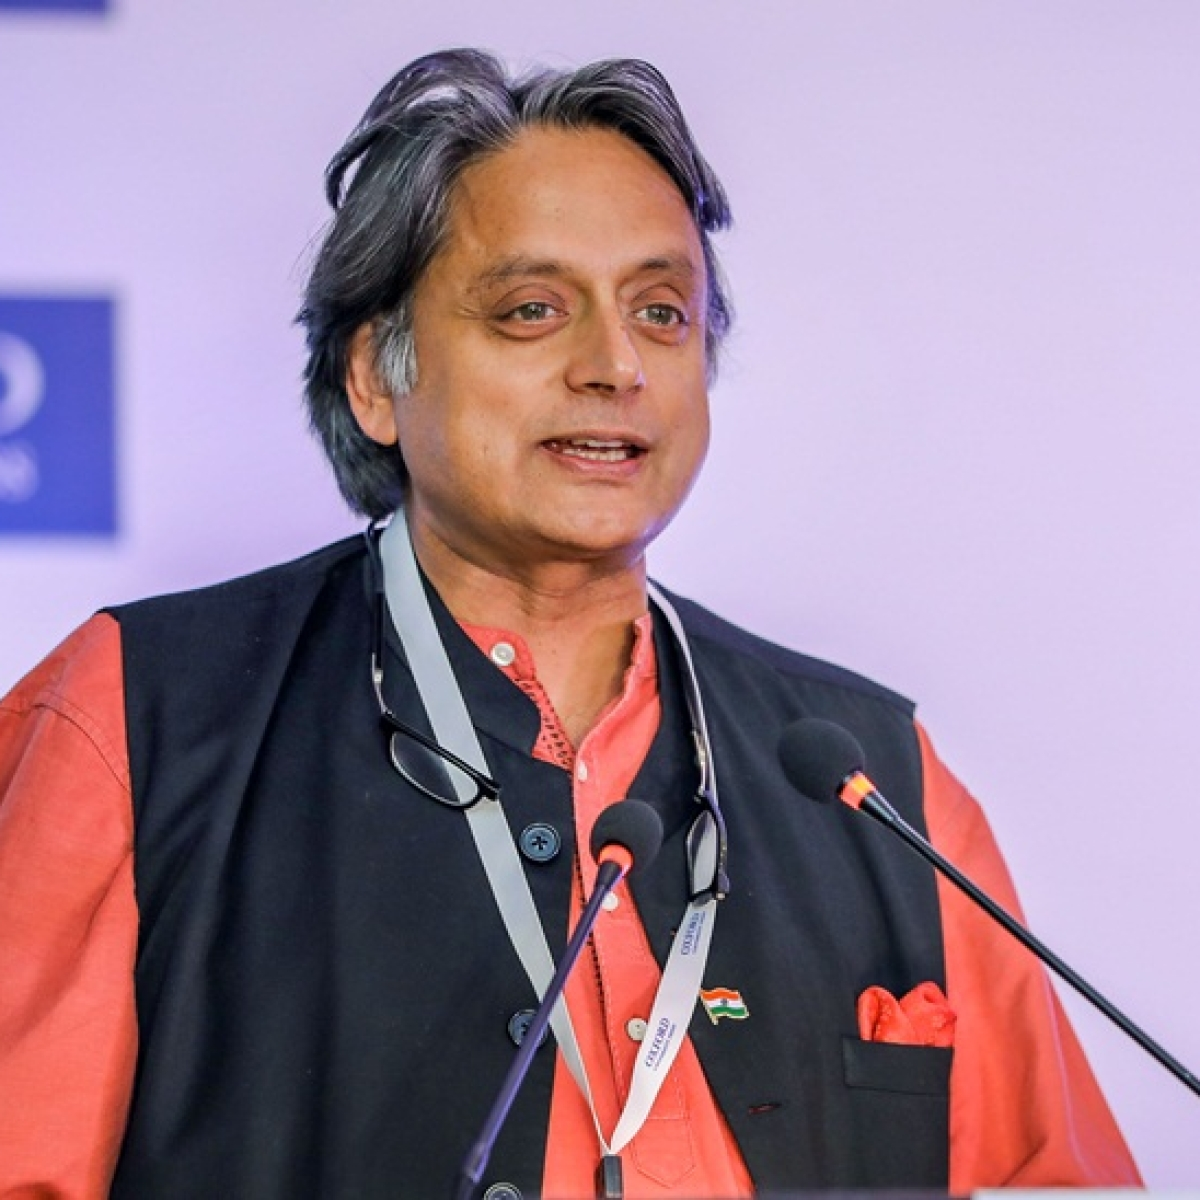 After Chidambaram will Shashi Tharoor be the next target for the Modi Government?